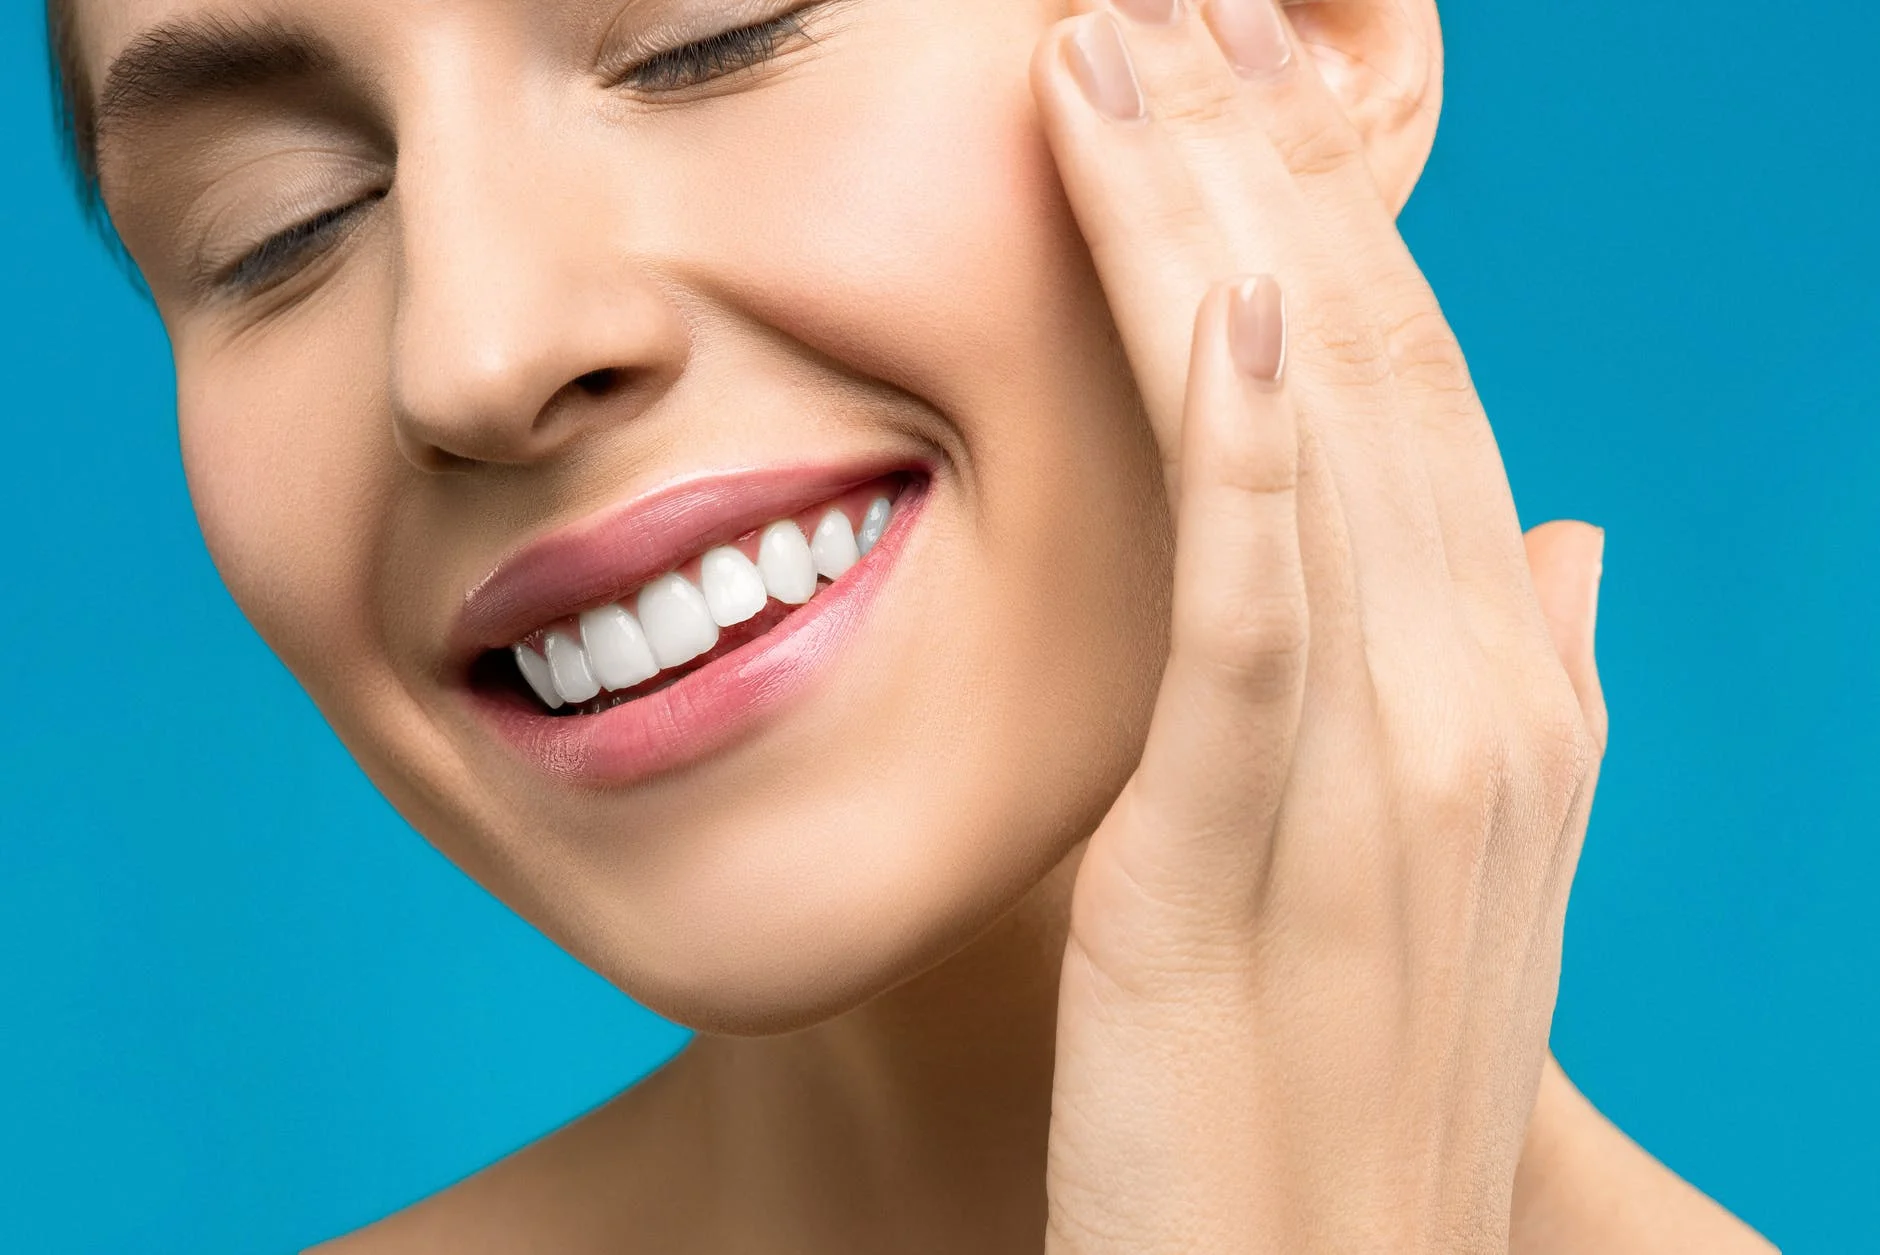 Guide To Treating Inflamed Acne At Home